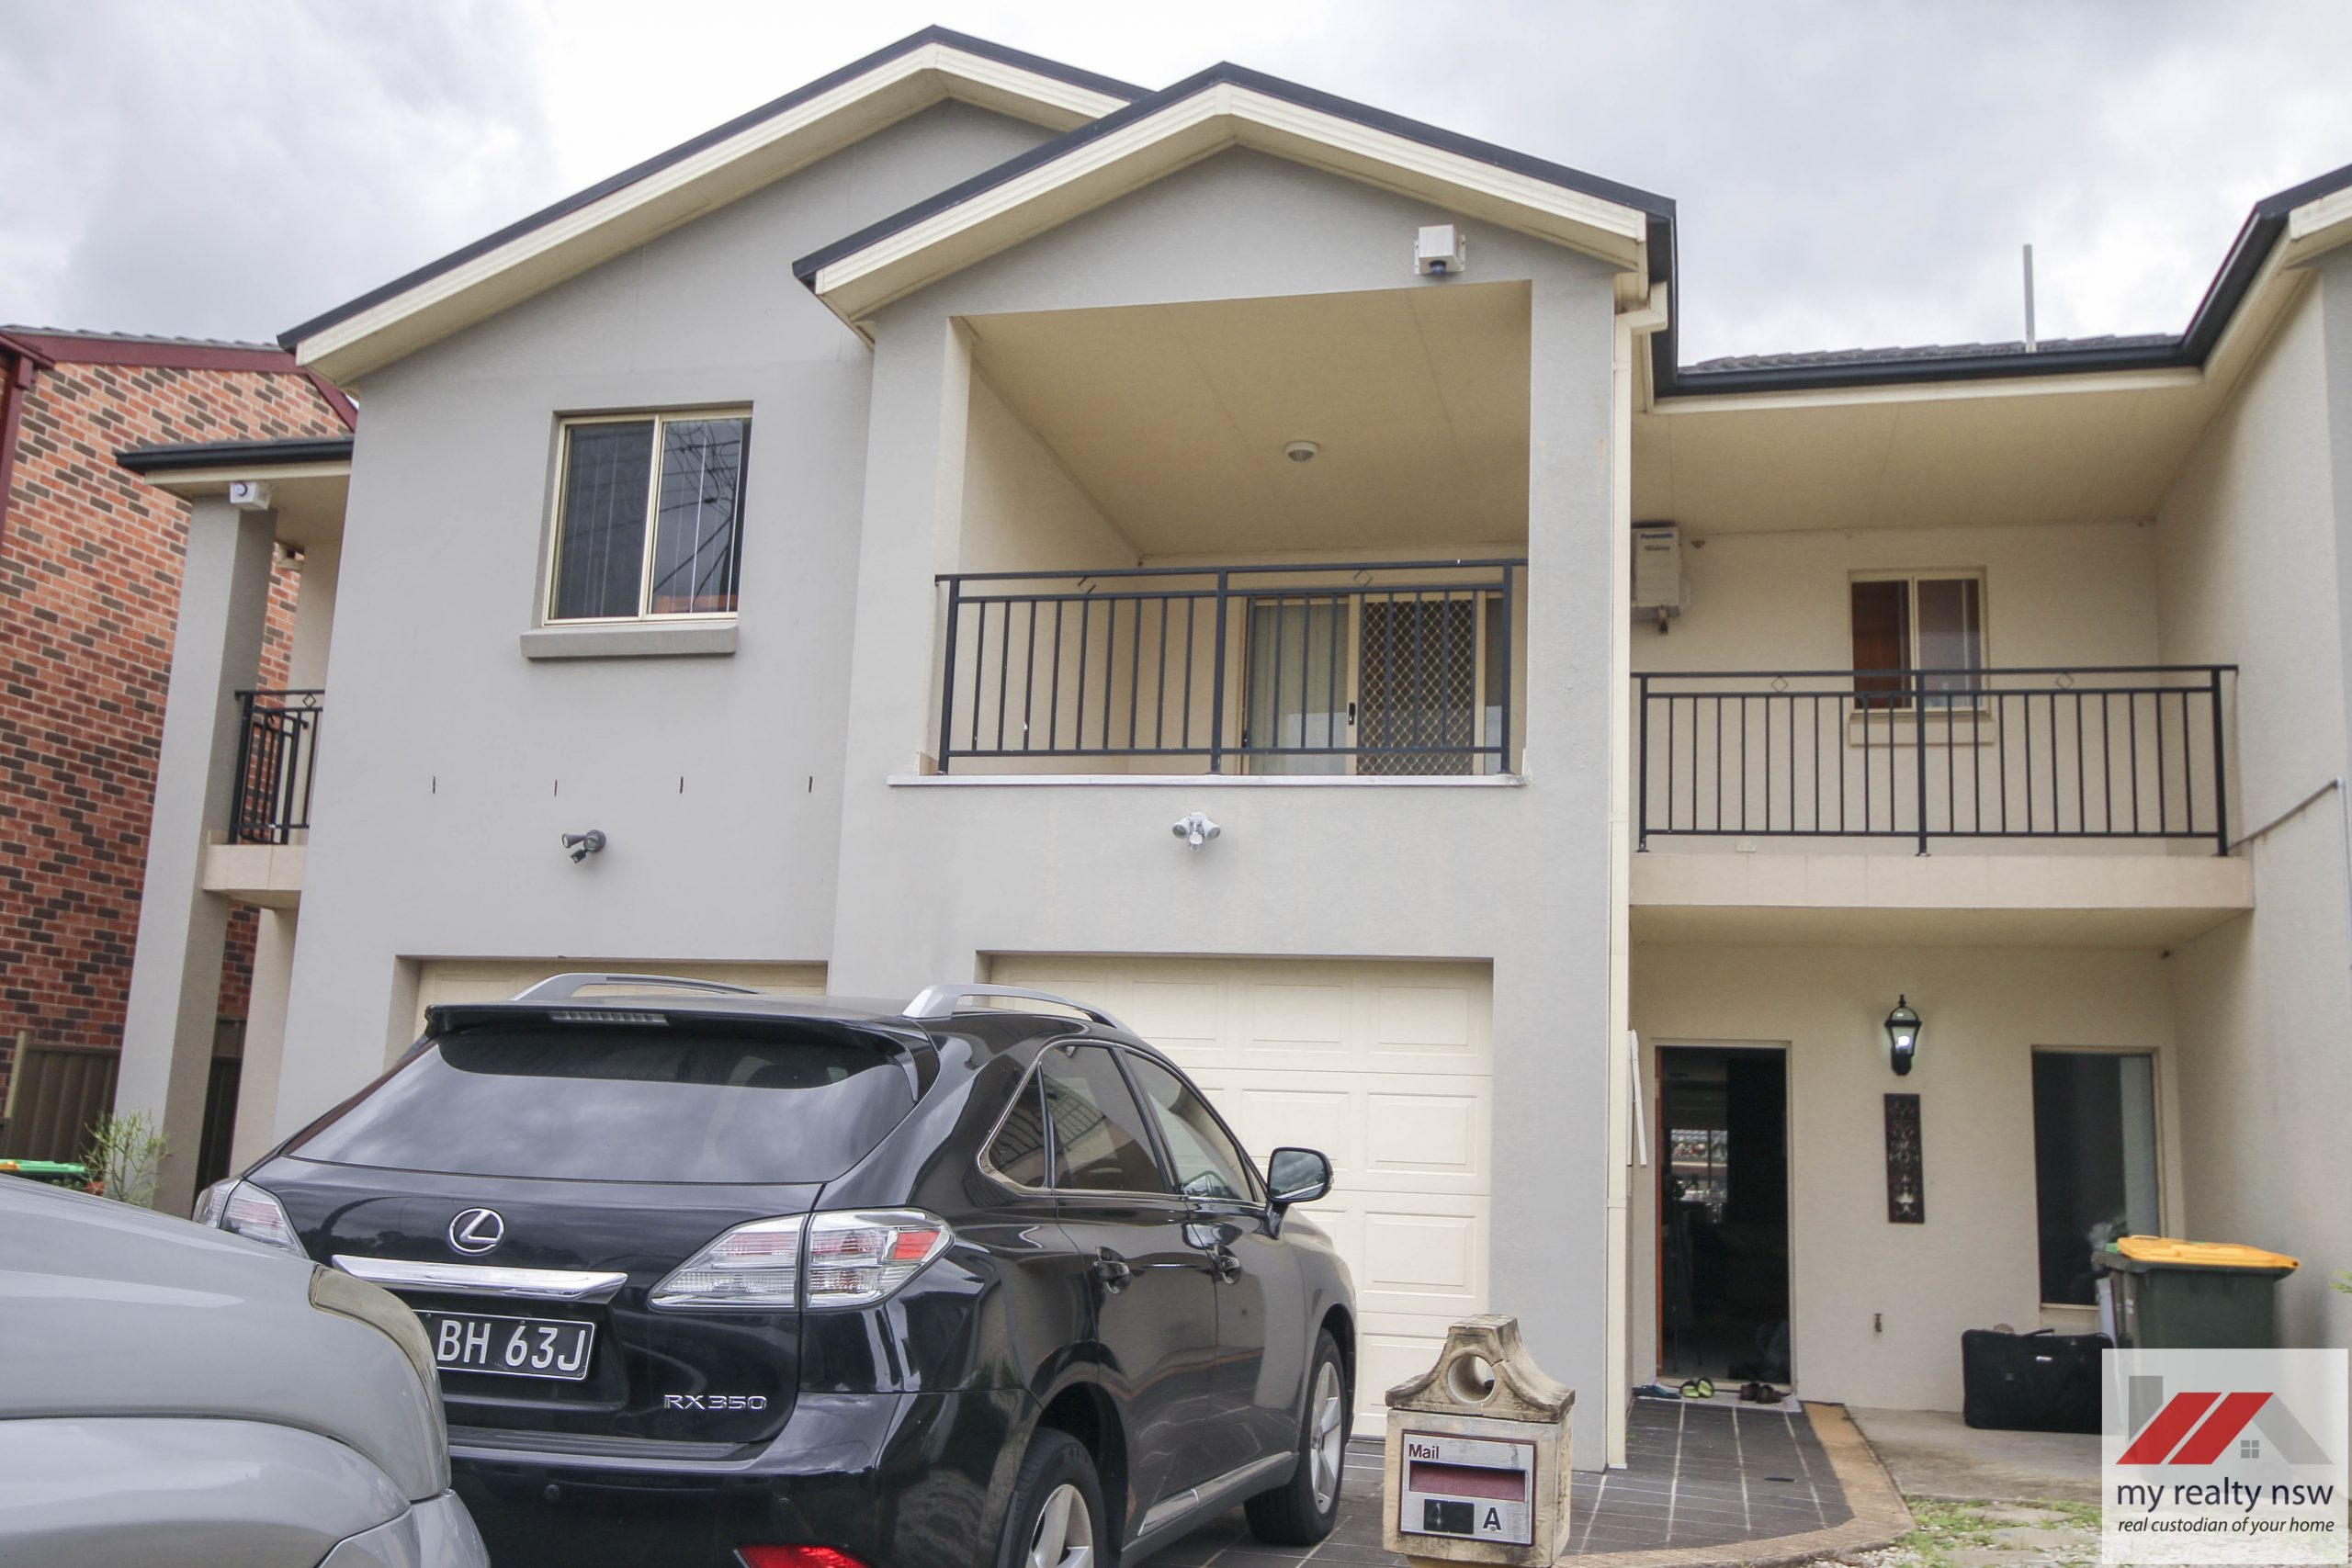 Beautiful render town house at last in the heart of Ingleburn